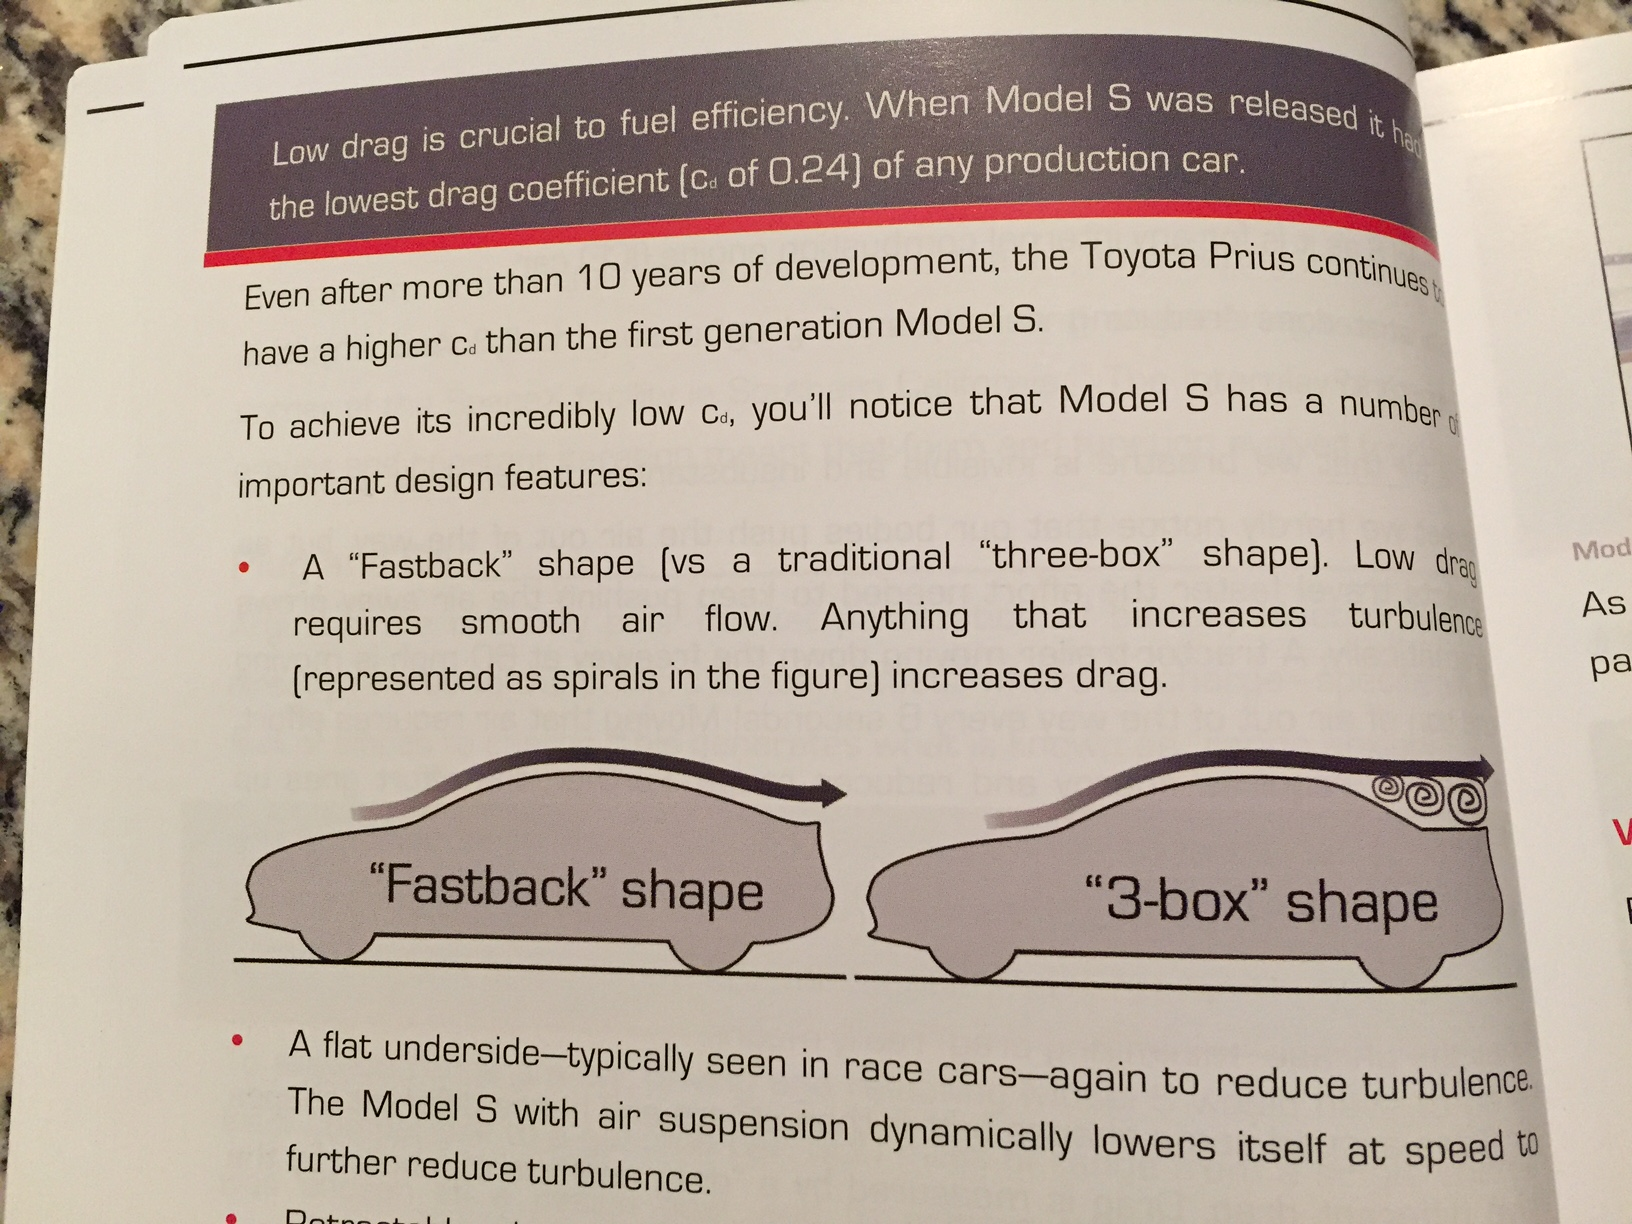 Owning Model S book insights